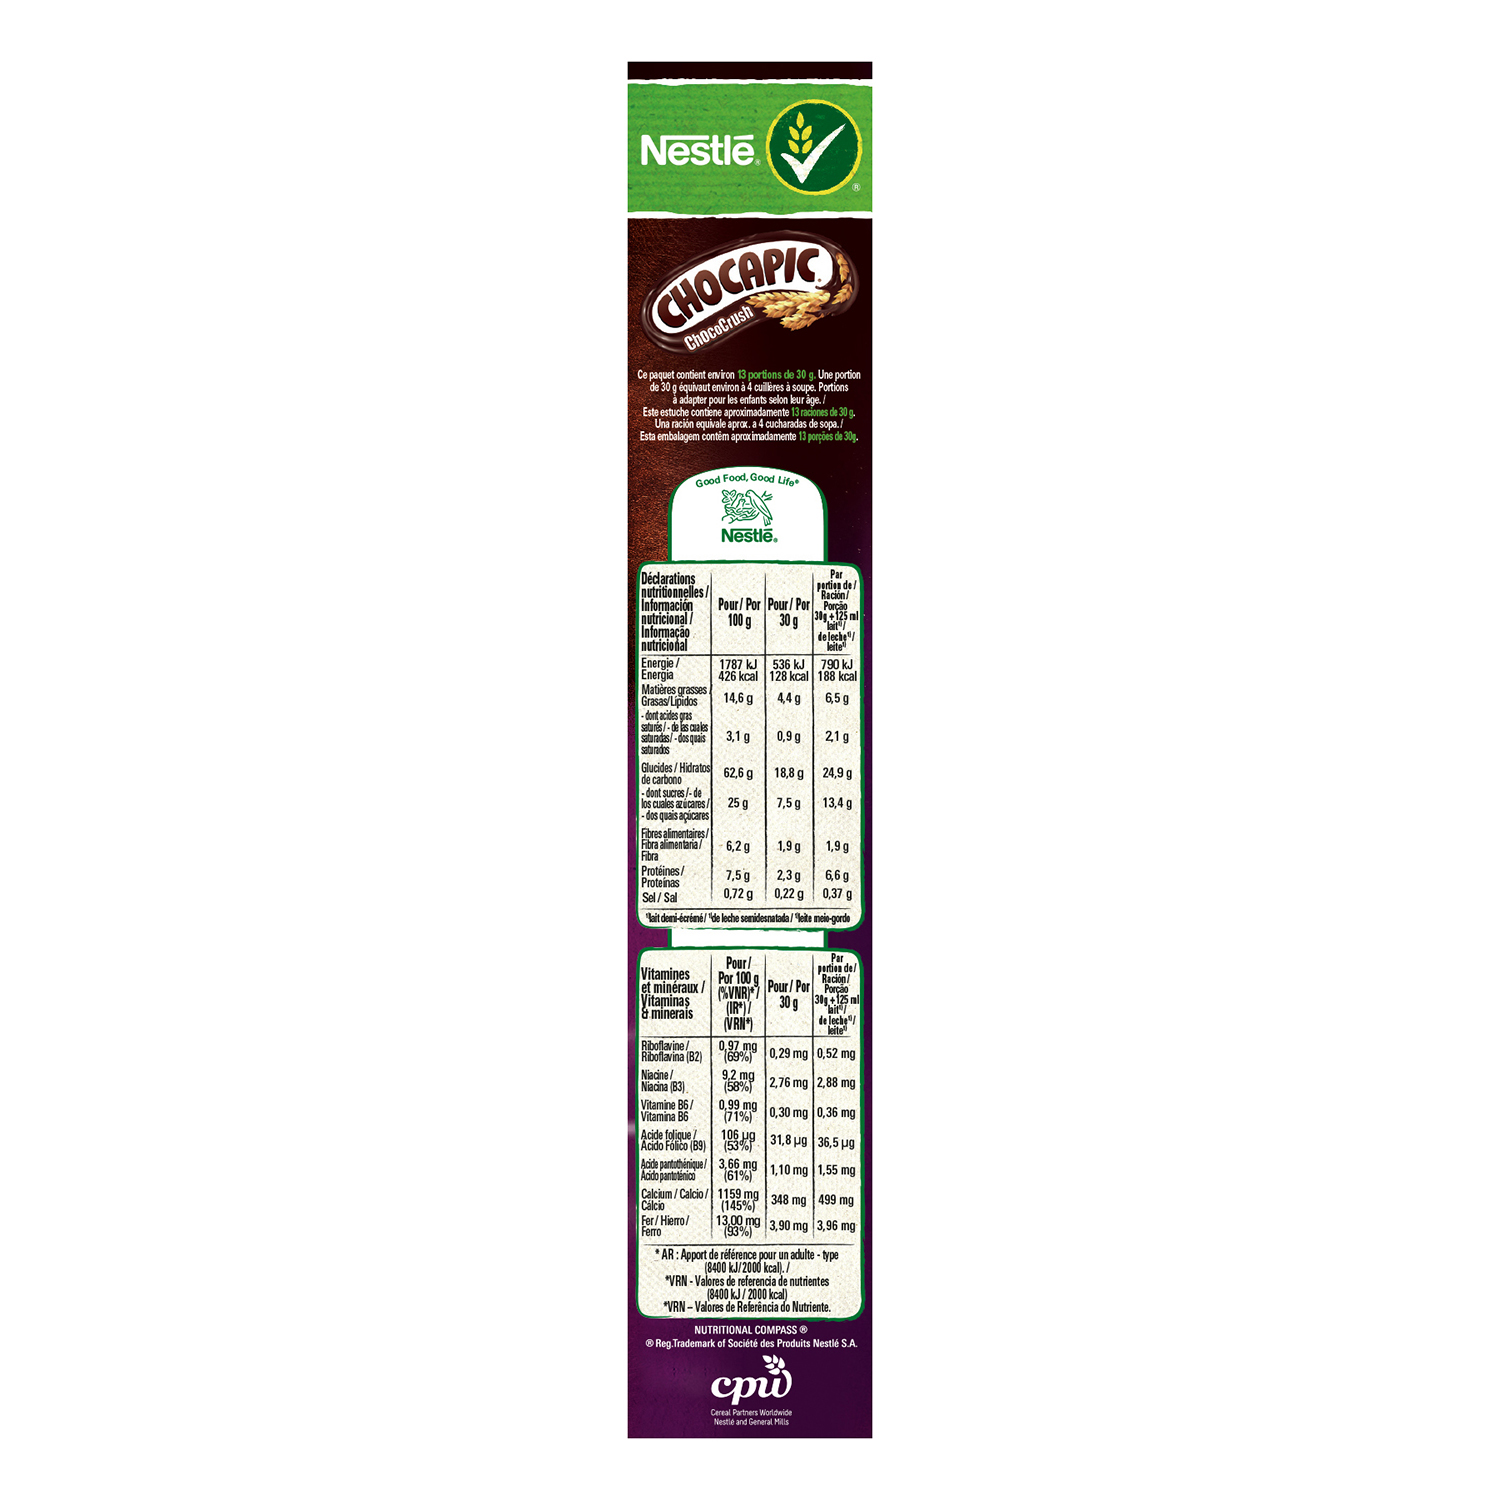 Cereales ChocoCrush Chocapic Nestlé 410 g. - 2